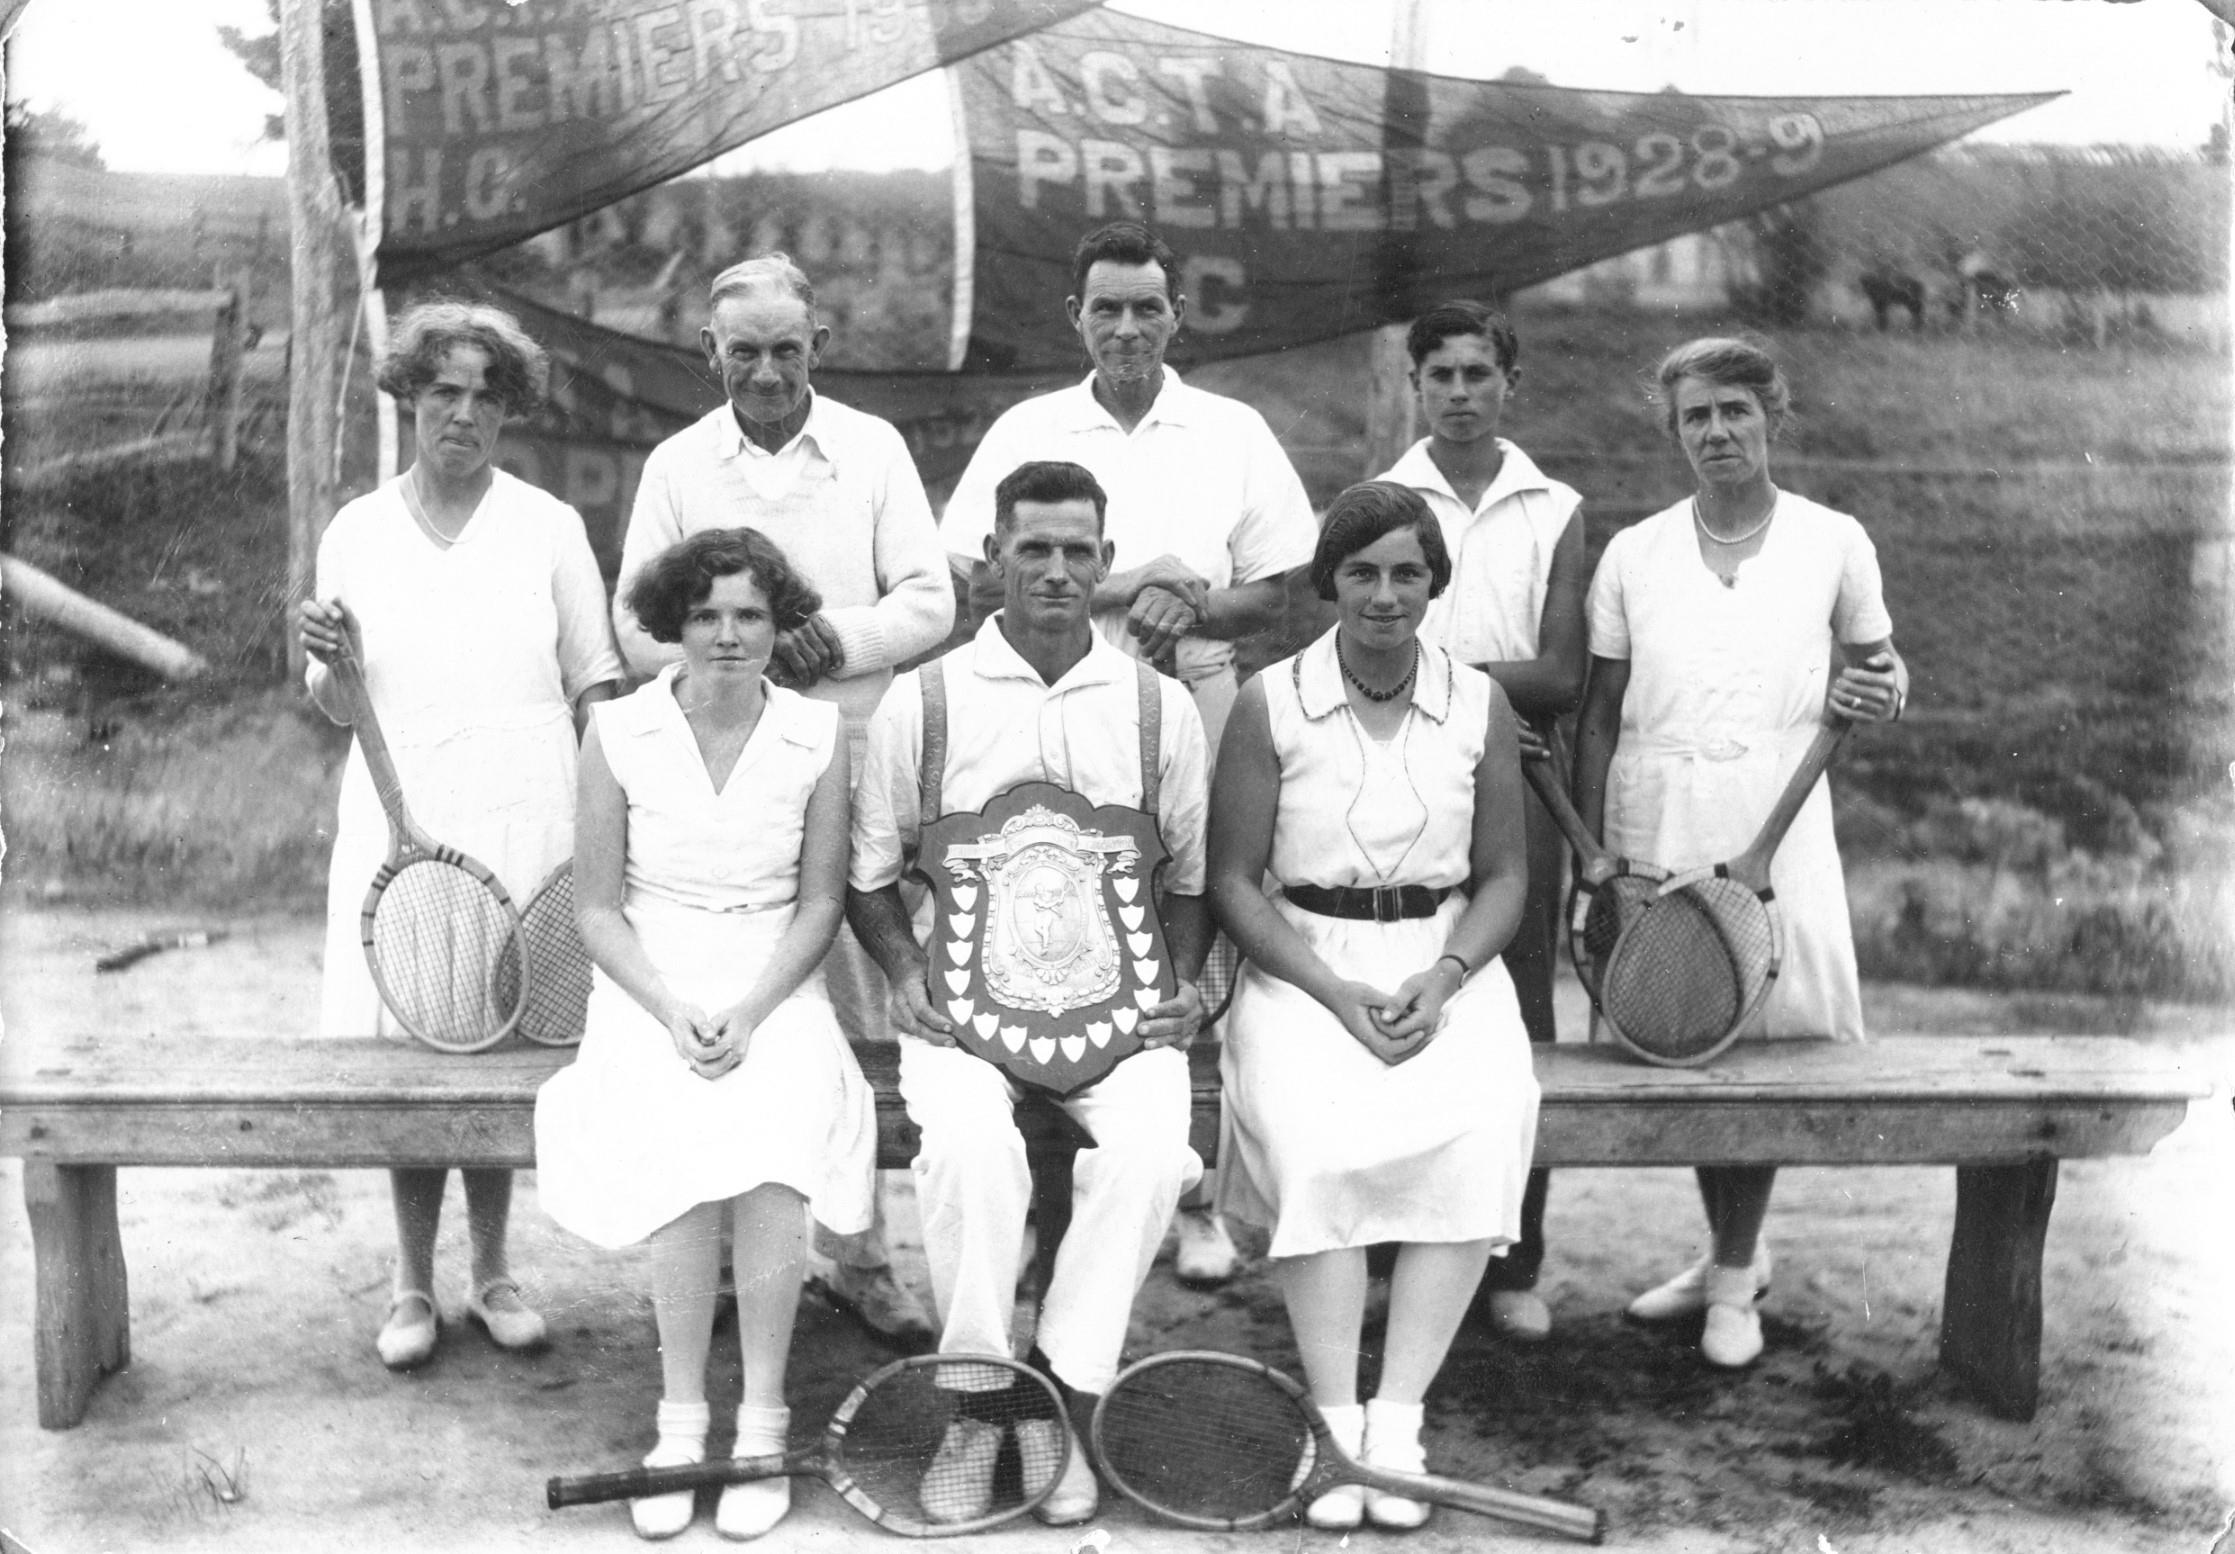 Arthurs Creek Tennis Association, Hazel Glen Club, Premiership Winners 1931-32.  Photo taken at the Hazel Glen tennis court located on the corner of Bannon's Lane North and Doctor's Gully Road (Hazelglen Hall is the background).  Back row left to right: Alice Victoria 'Vic' Laidlay, W. Stephens, Everard Bassett, Neil Laidlay (son of Vic & Bill), Lina Bassett (sister-in-law of Everard).  Back row: Isabel 'Bel' Laidlay, William 'Bill' Laidlay (husband of Vic), Jean Bassett (daughter of Everard).   The Hazelglen Hall became a centre for the Hazel Glen Church of England, the Hazel Glen Private Assembly, Arthurs Creek Cricket Club, Arthurs Creek Rifle Club, Hazel Glen Football Club and Hazel Glen Tennis Club.  Photo and information credit Neil Brock